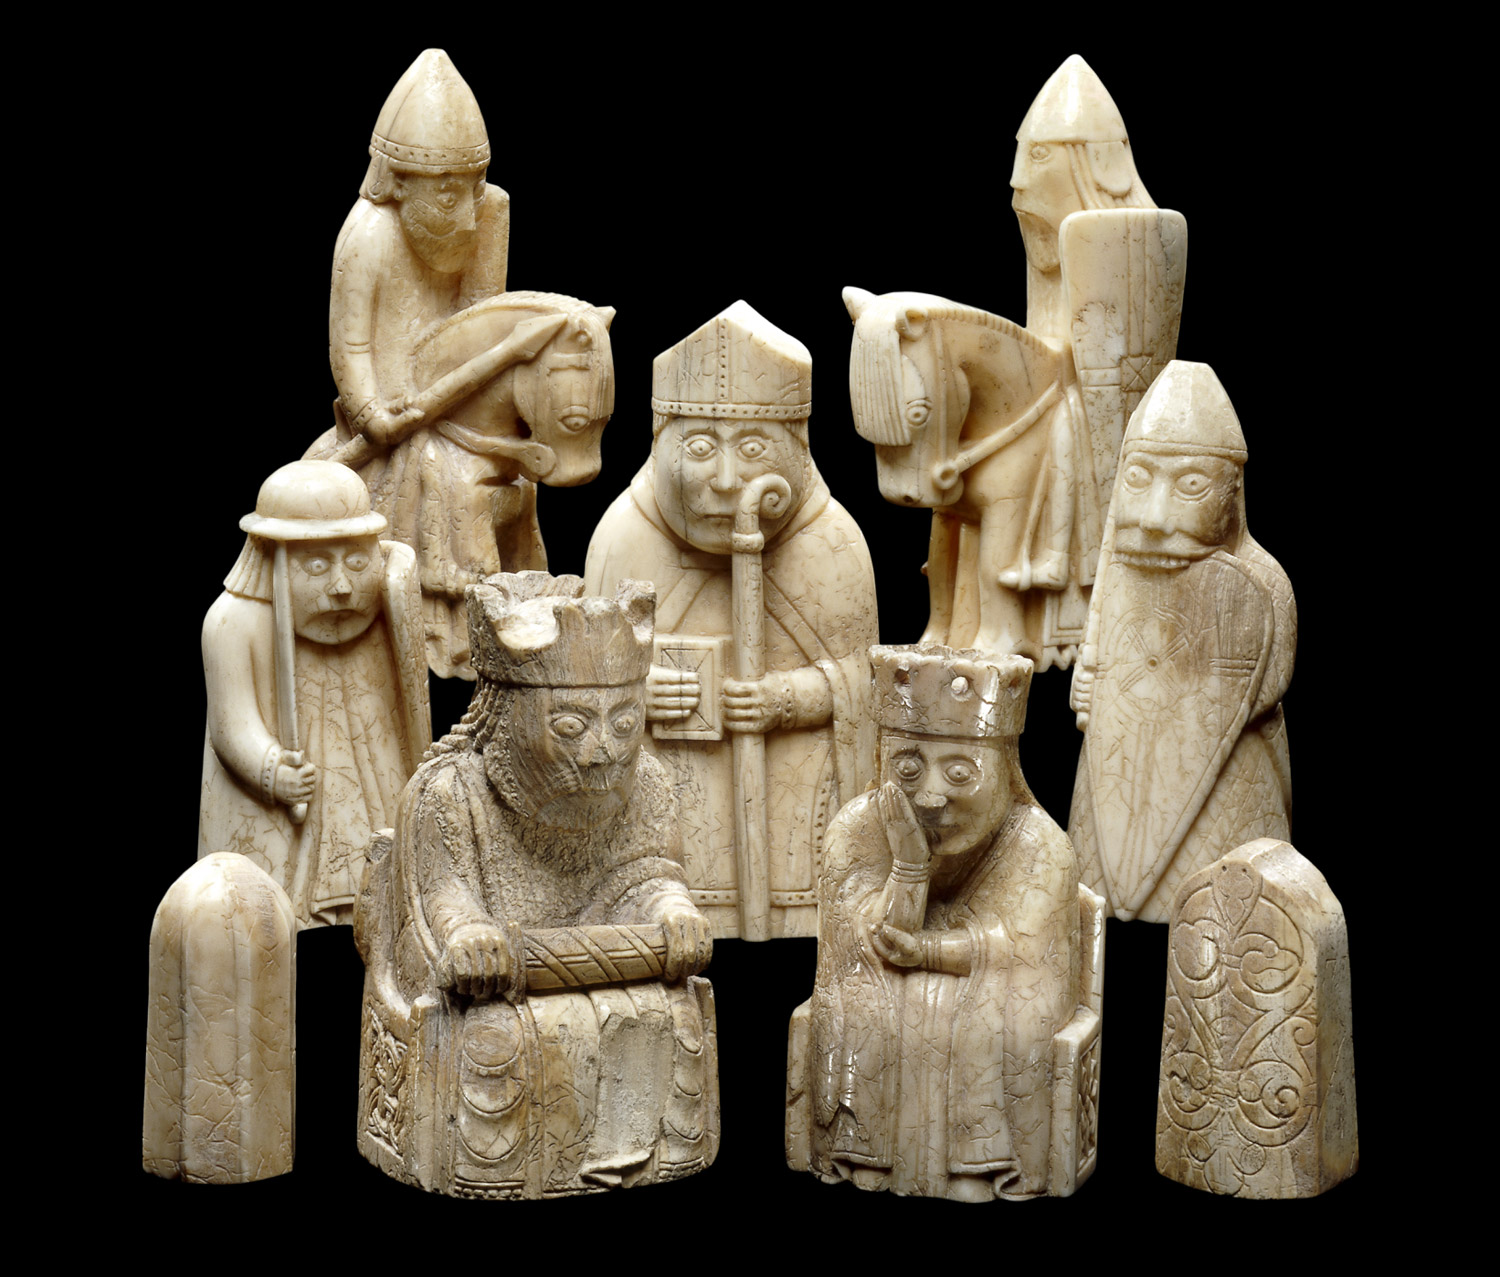 Photograph of a small group of the Lewis Chessmen, on a black background, with characterful individual expressions.